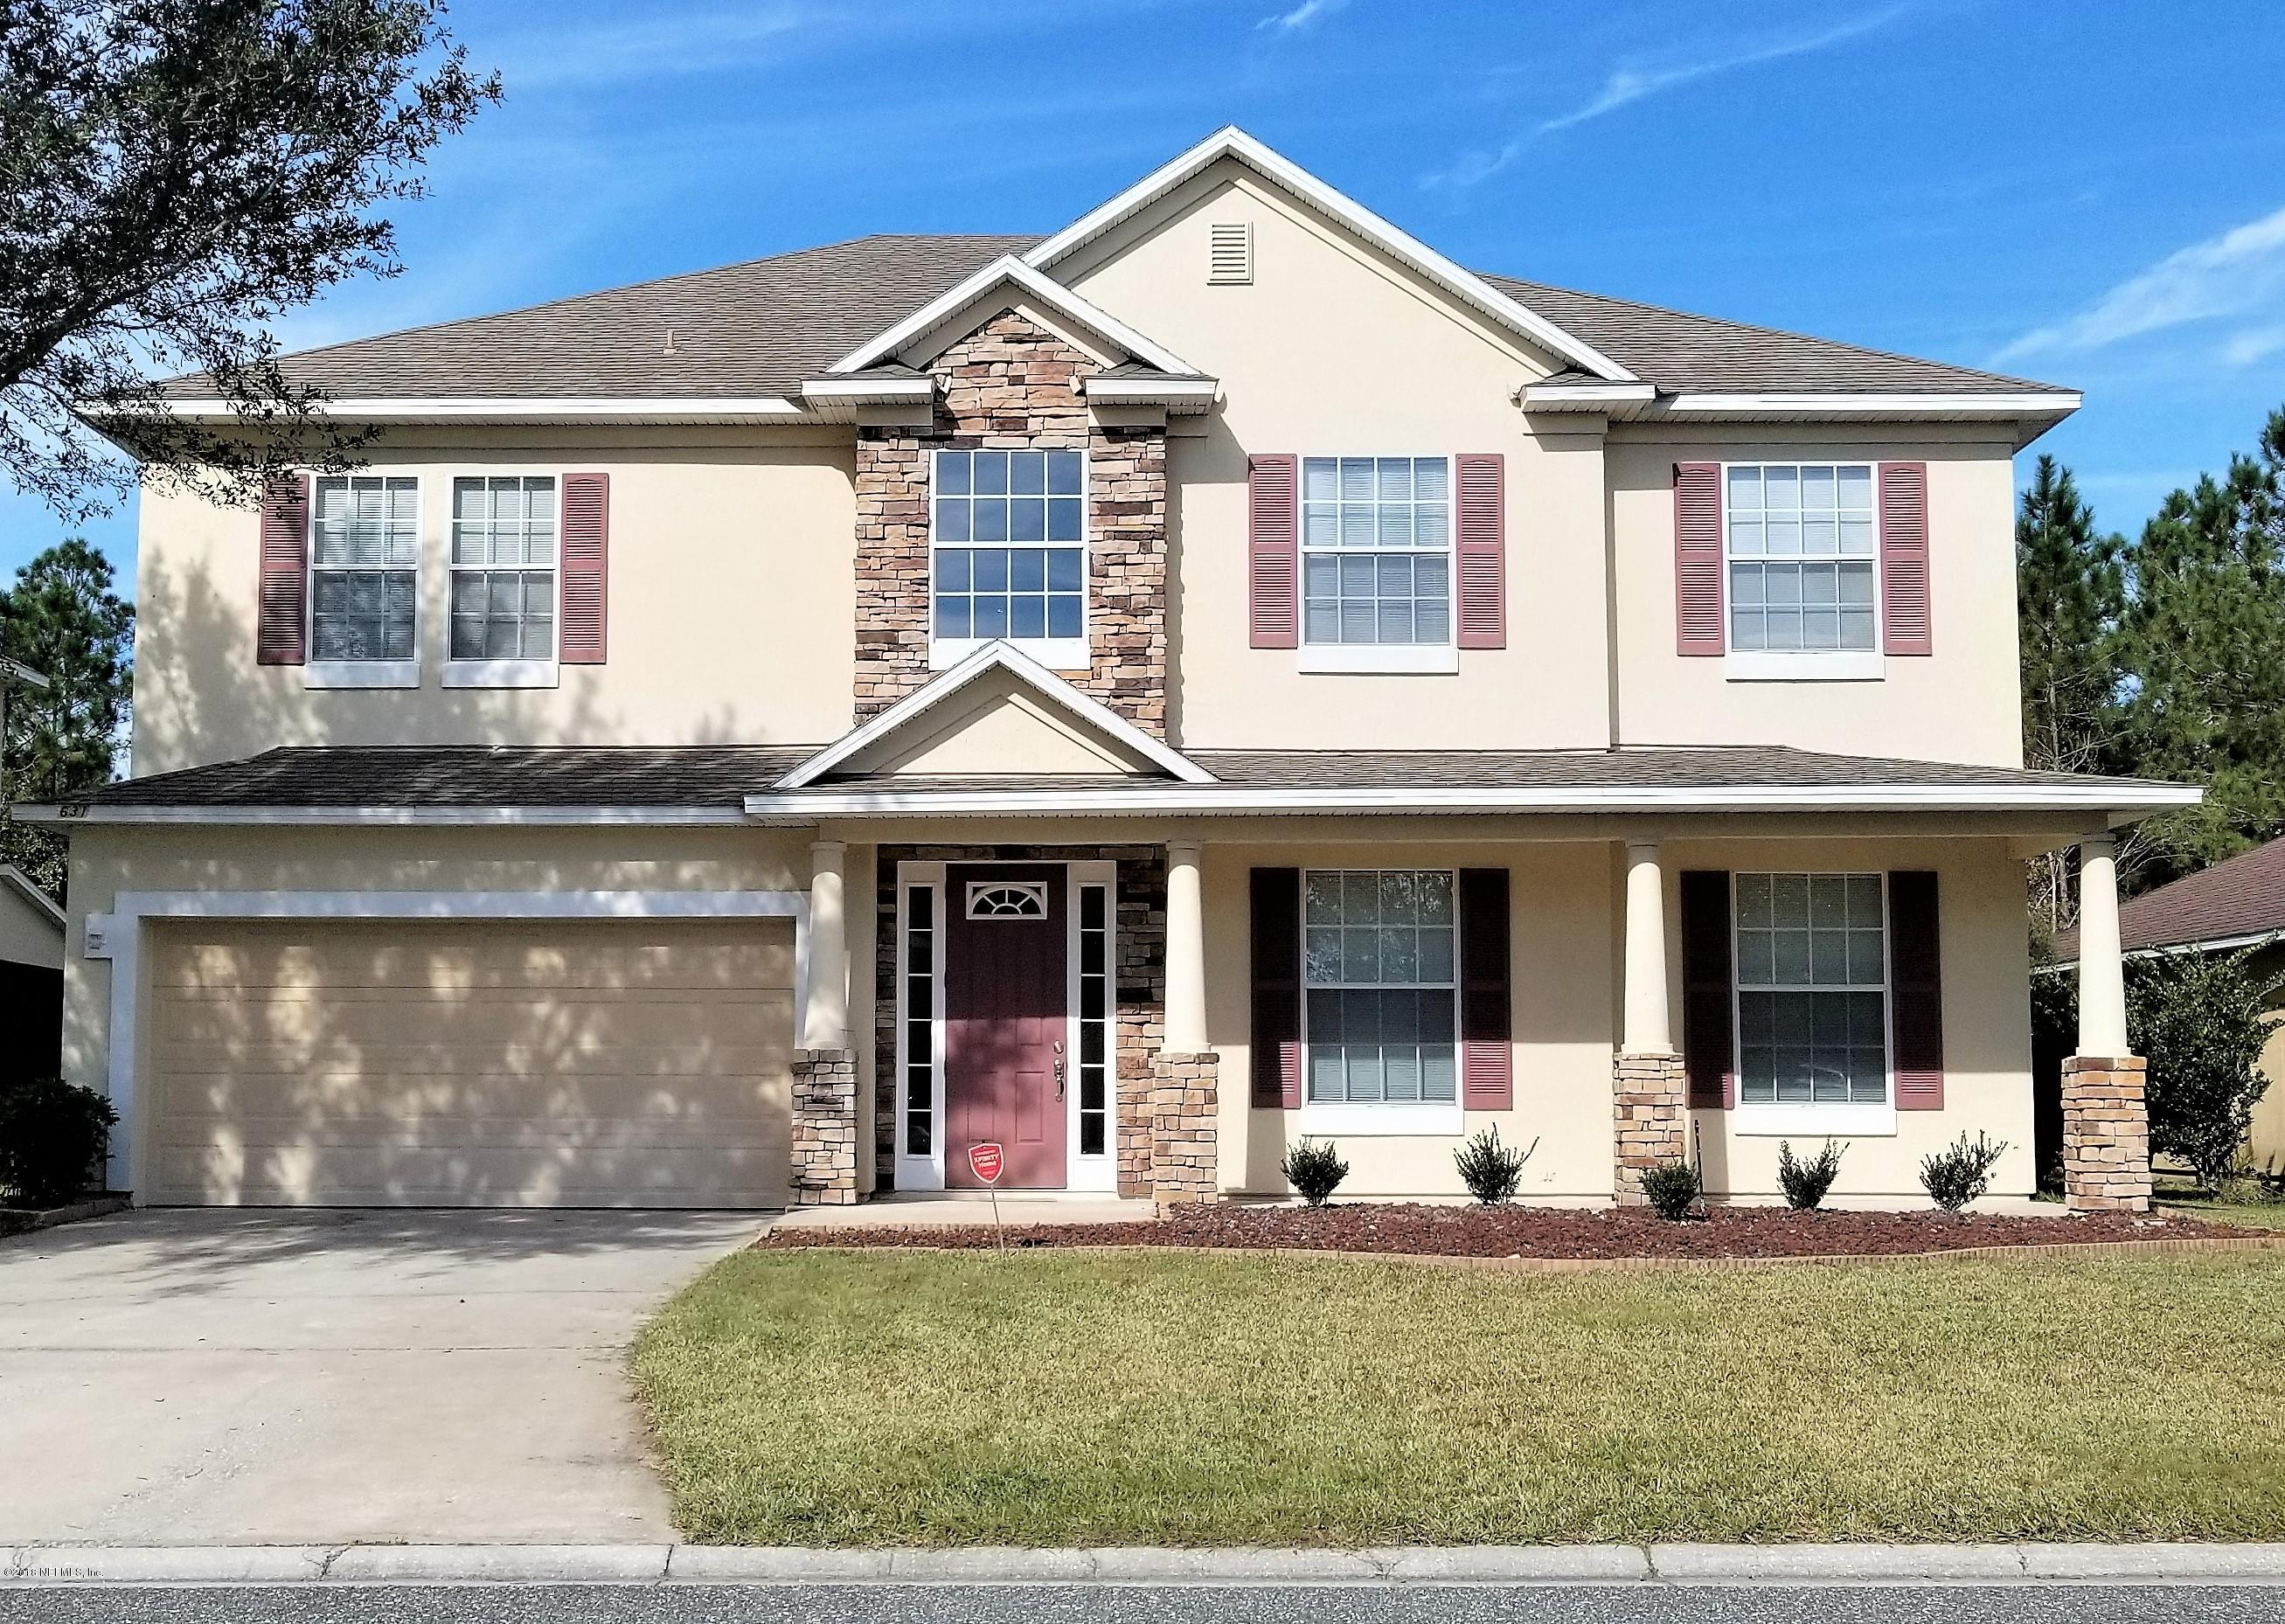 631 WAKEVIEW, ORANGE PARK, FLORIDA 32065, 5 Bedrooms Bedrooms, ,3 BathroomsBathrooms,Residential - single family,For sale,WAKEVIEW,969194